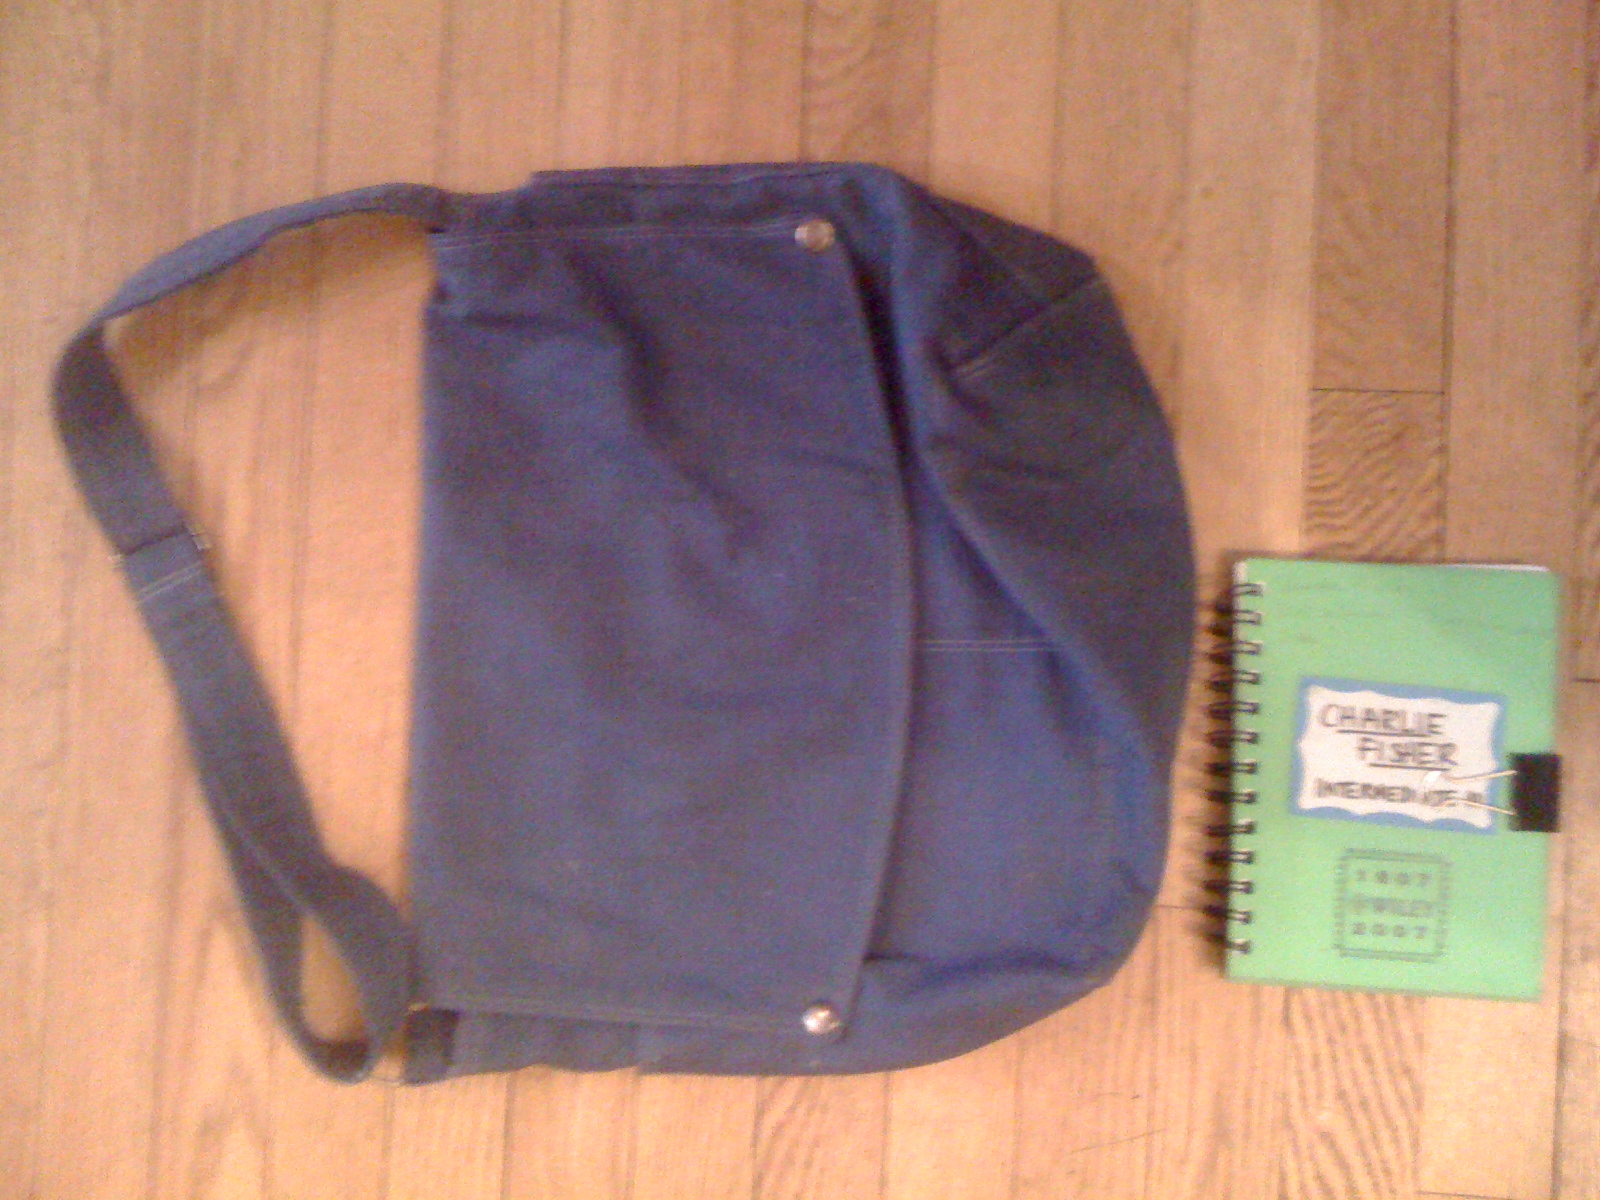 Arrangement with bookbag and notebook by Charlie